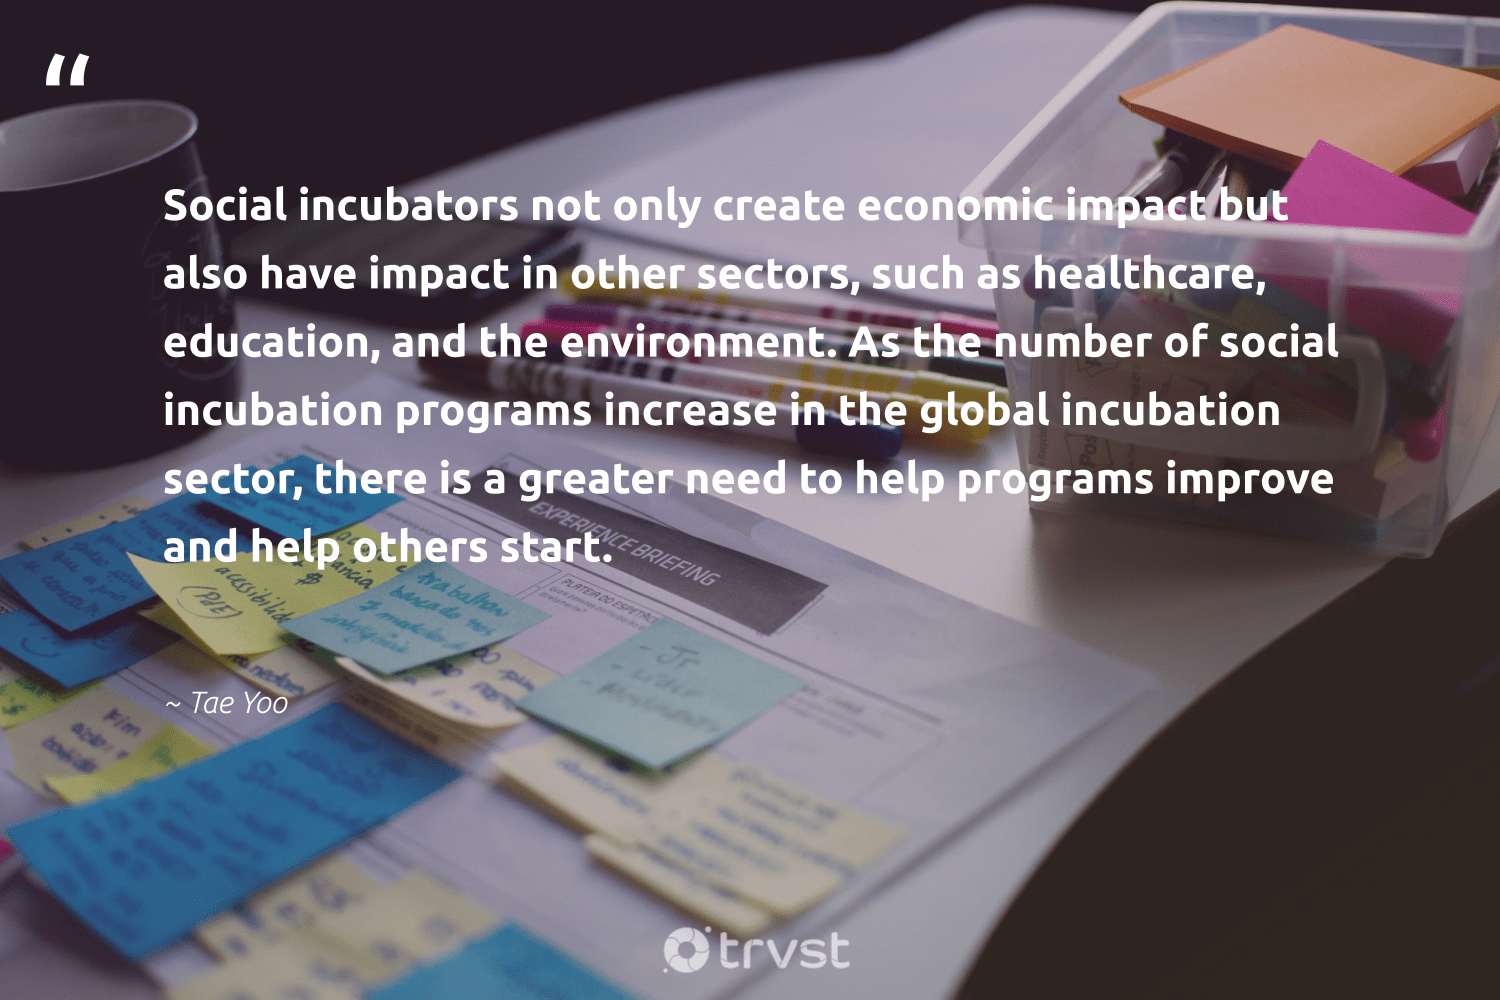 """""""Social incubators not only create economic impact but also have impact in other sectors, such as healthcare, education, and the environment. As the number of social incubation programs increase in the global incubation sector, there is a greater need to help programs improve and help others start.""""  - Tae Yoo #trvst #quotes #impact #environment #education #conservation #makeadifference #sustainability #thinkgreen #planet #ethicalbusiness #environmentallyfriendly"""